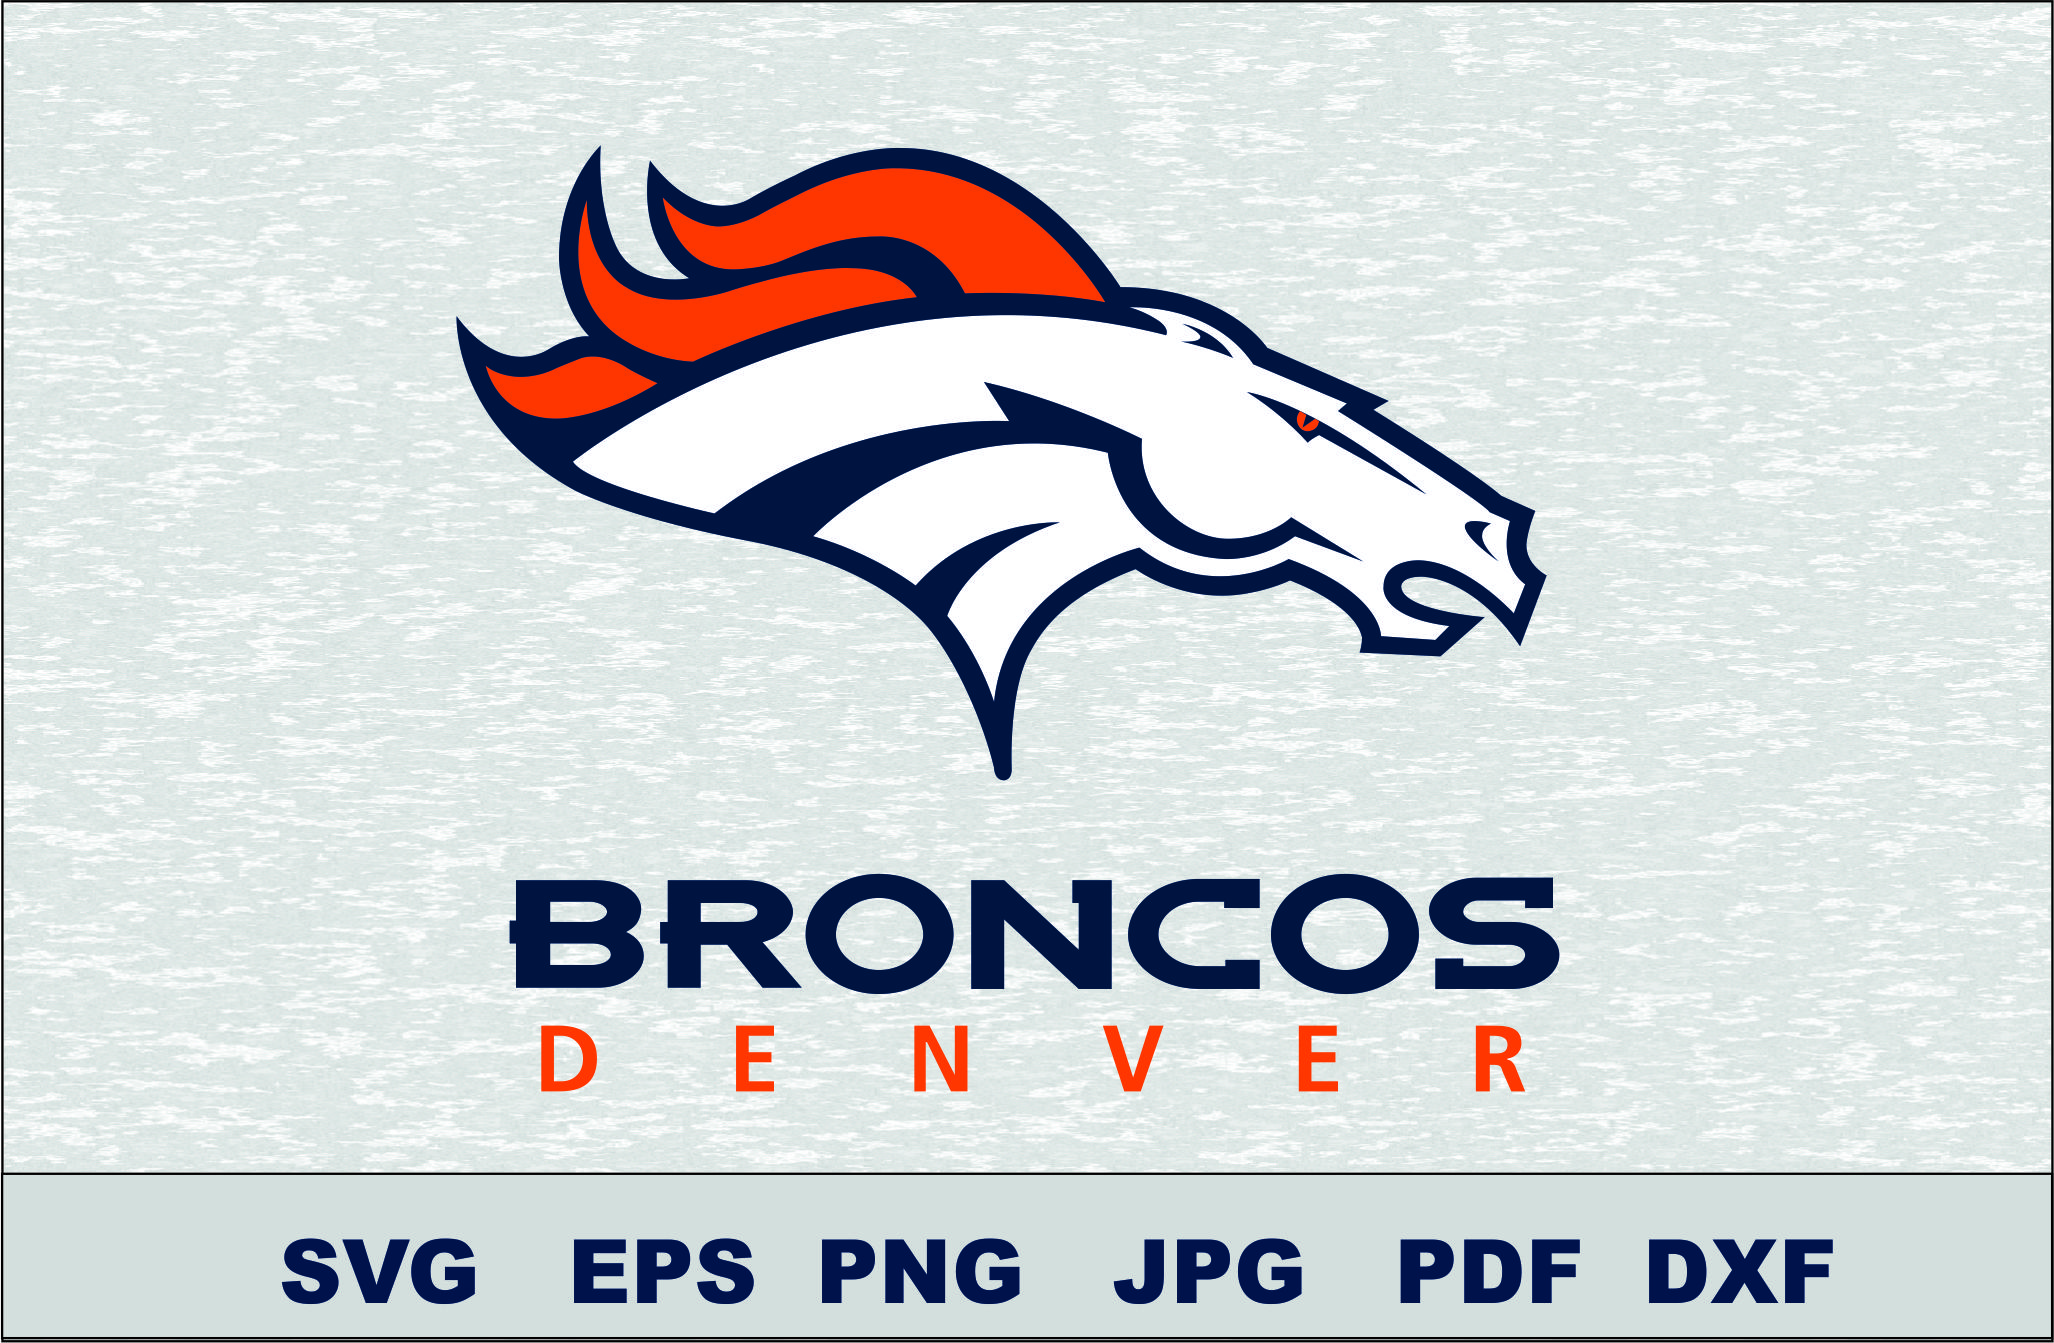 broncos svg #103, Download drawings